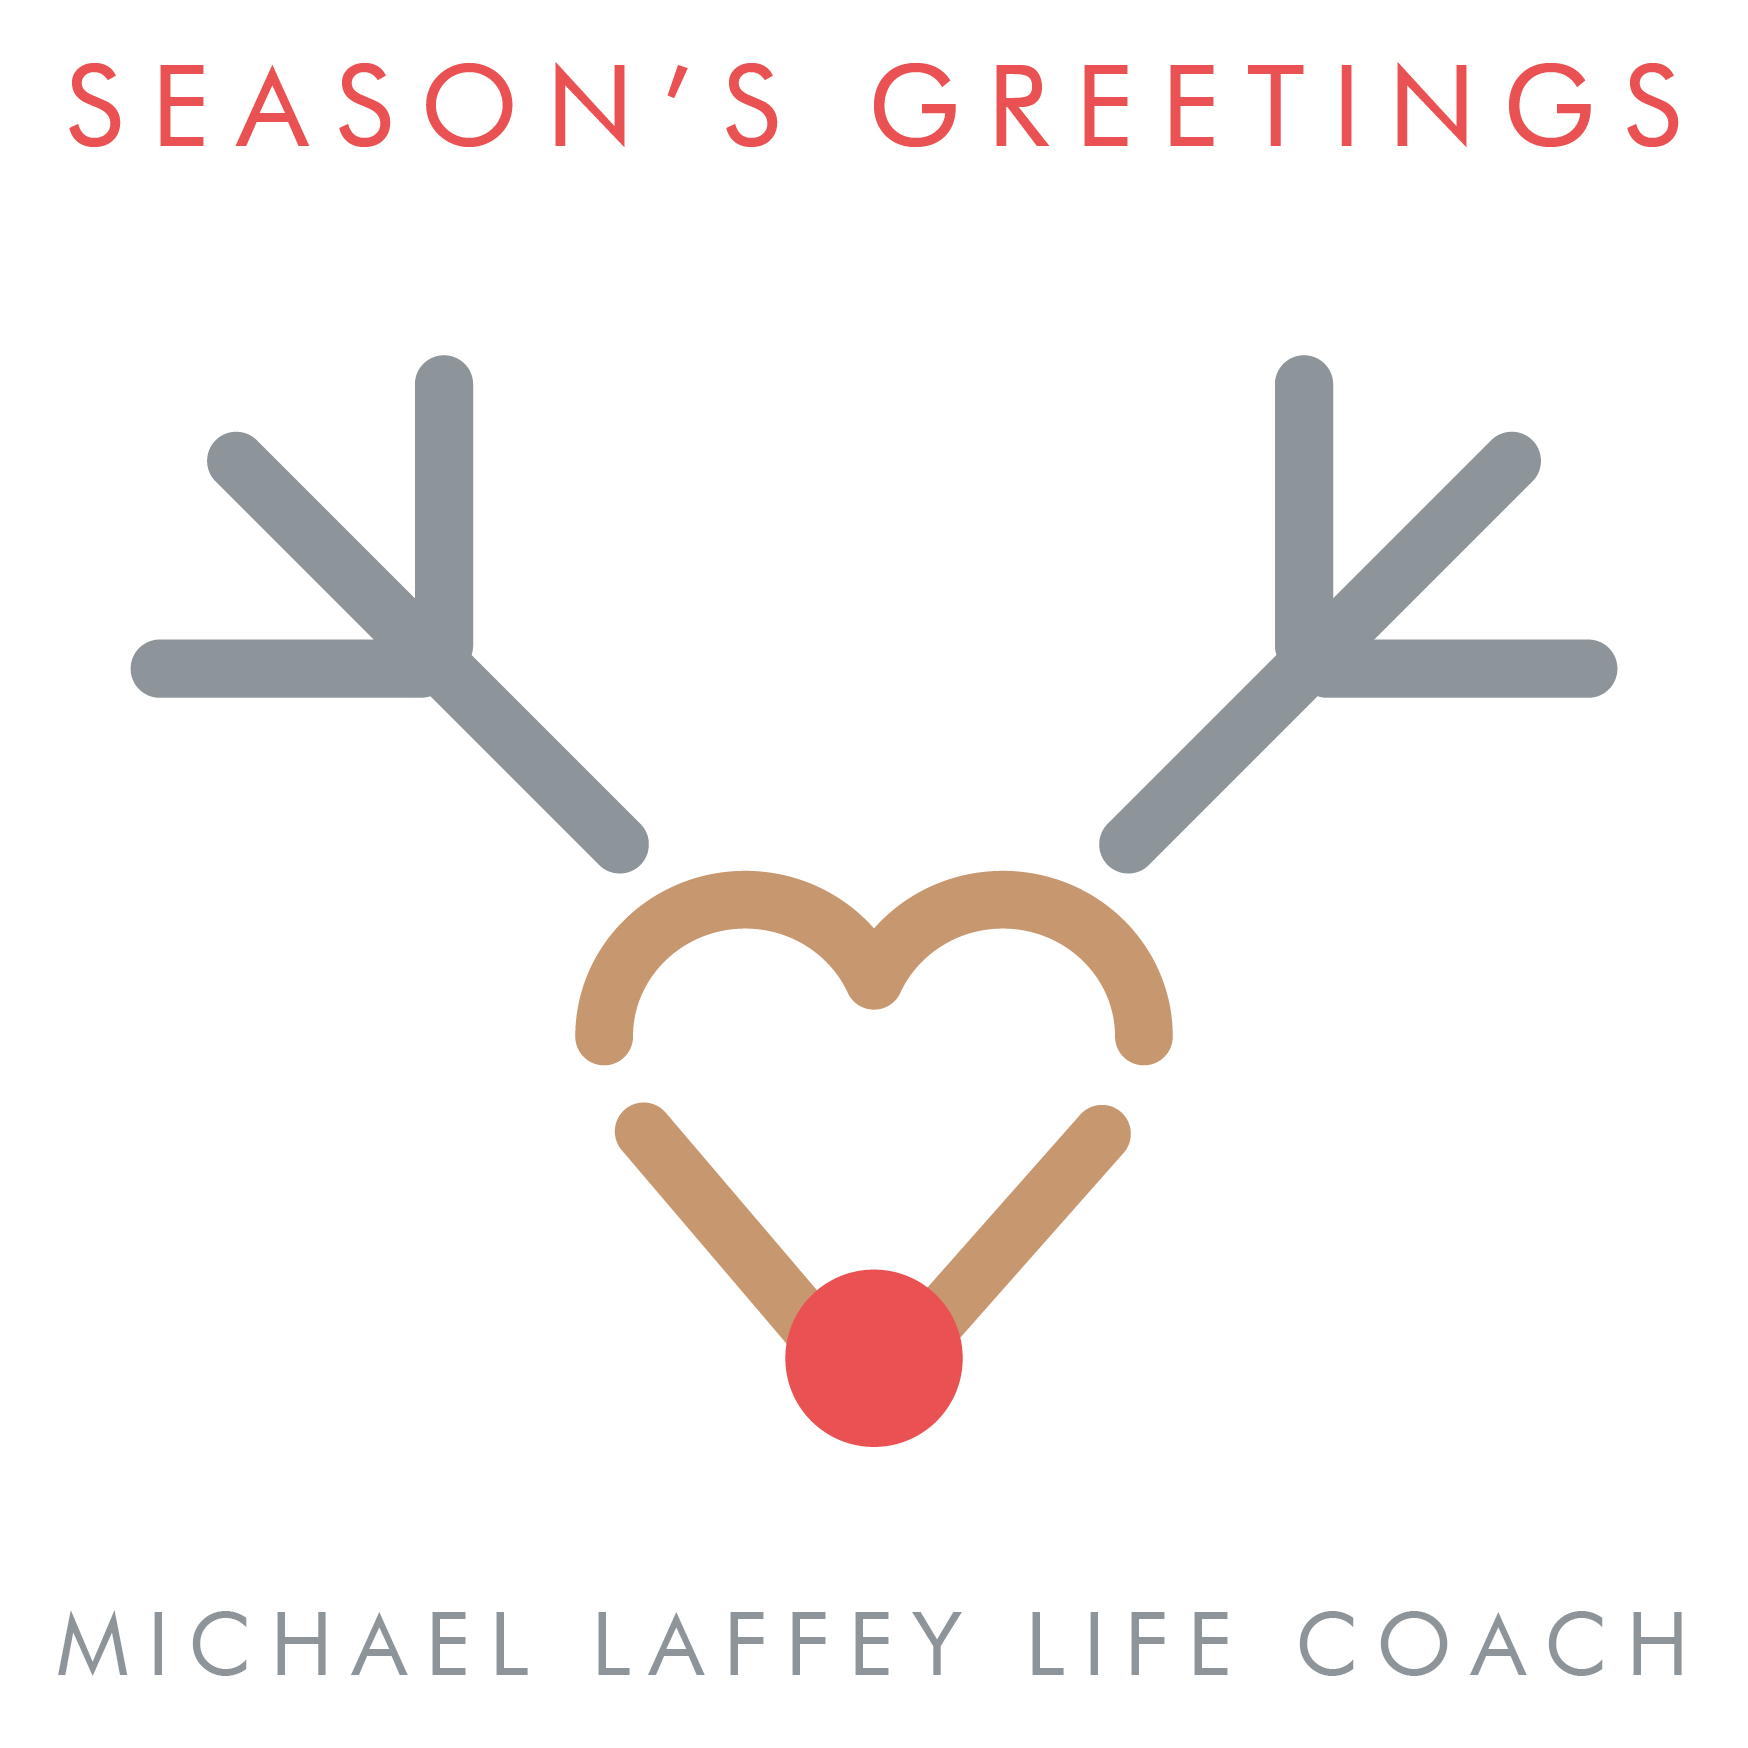 Season's Greetings, Seasons Greetings, Michael Laffey, Michael Laffey Life Coach, Life Coach, Sussex, Brighton, Hove